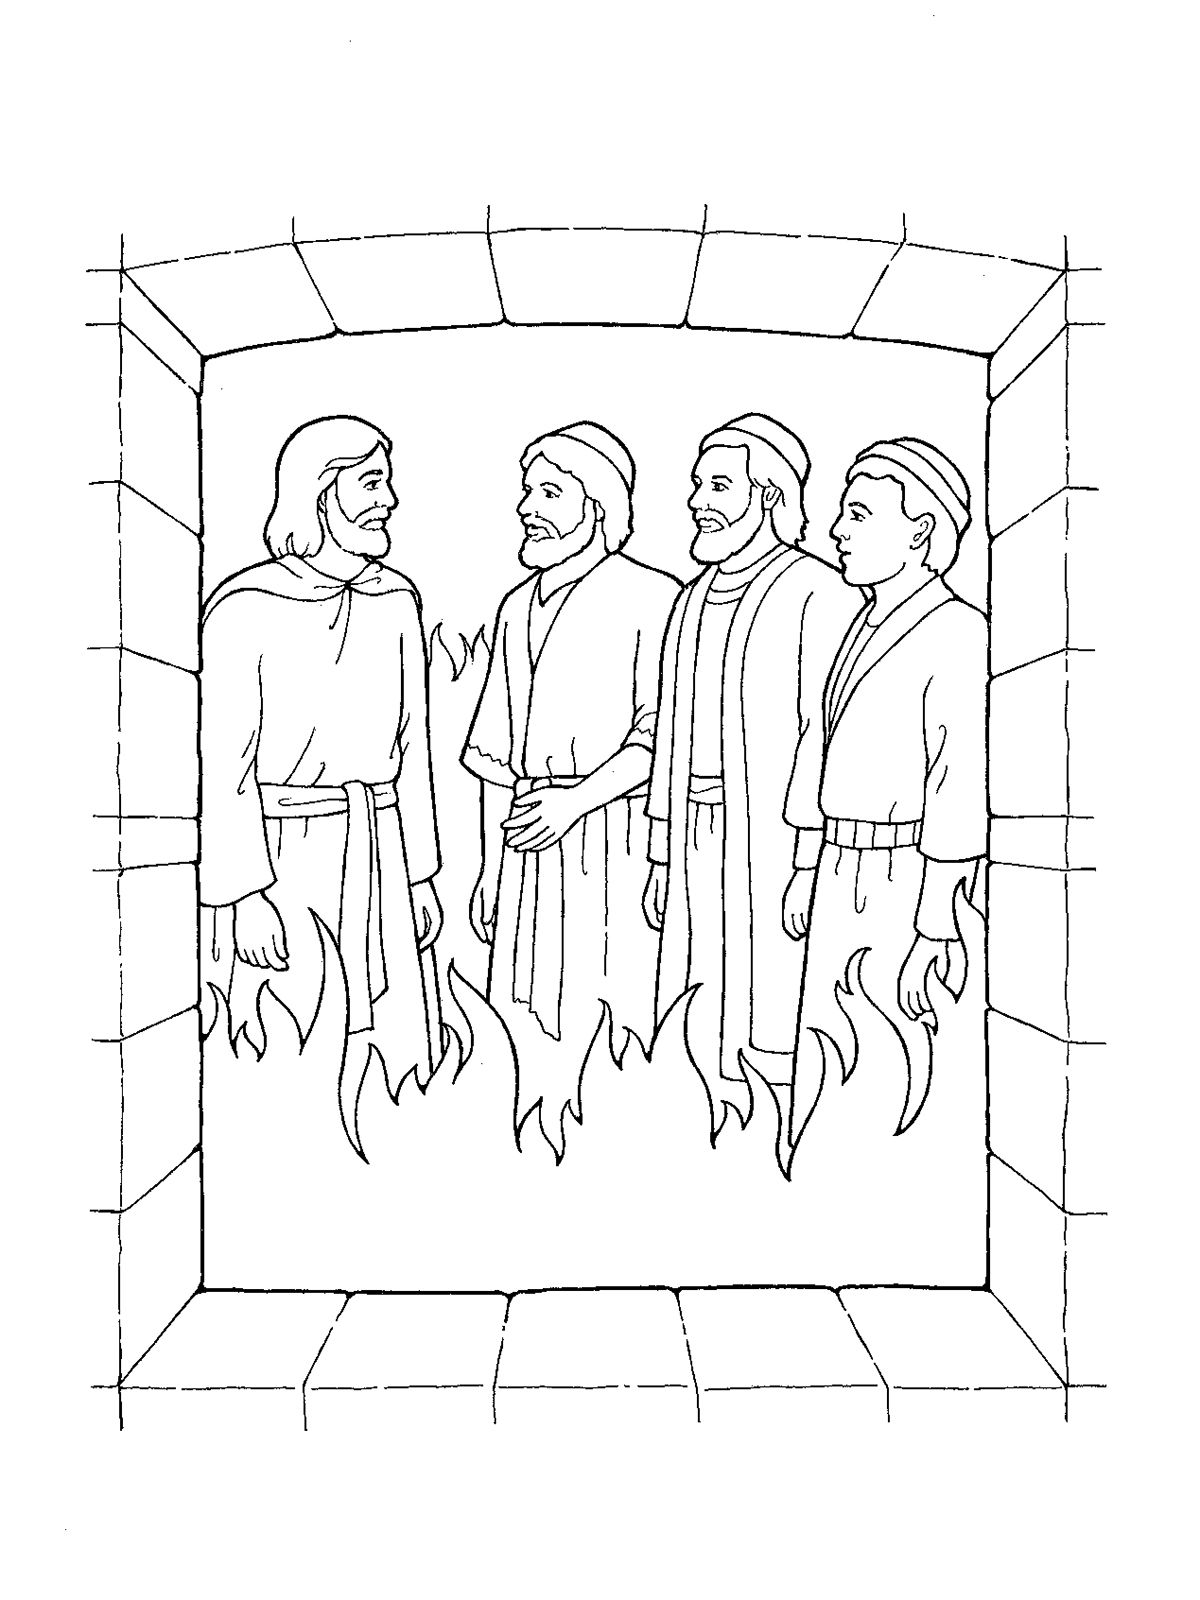 shadrach, meshach and abednego black and white clipart - Google ...